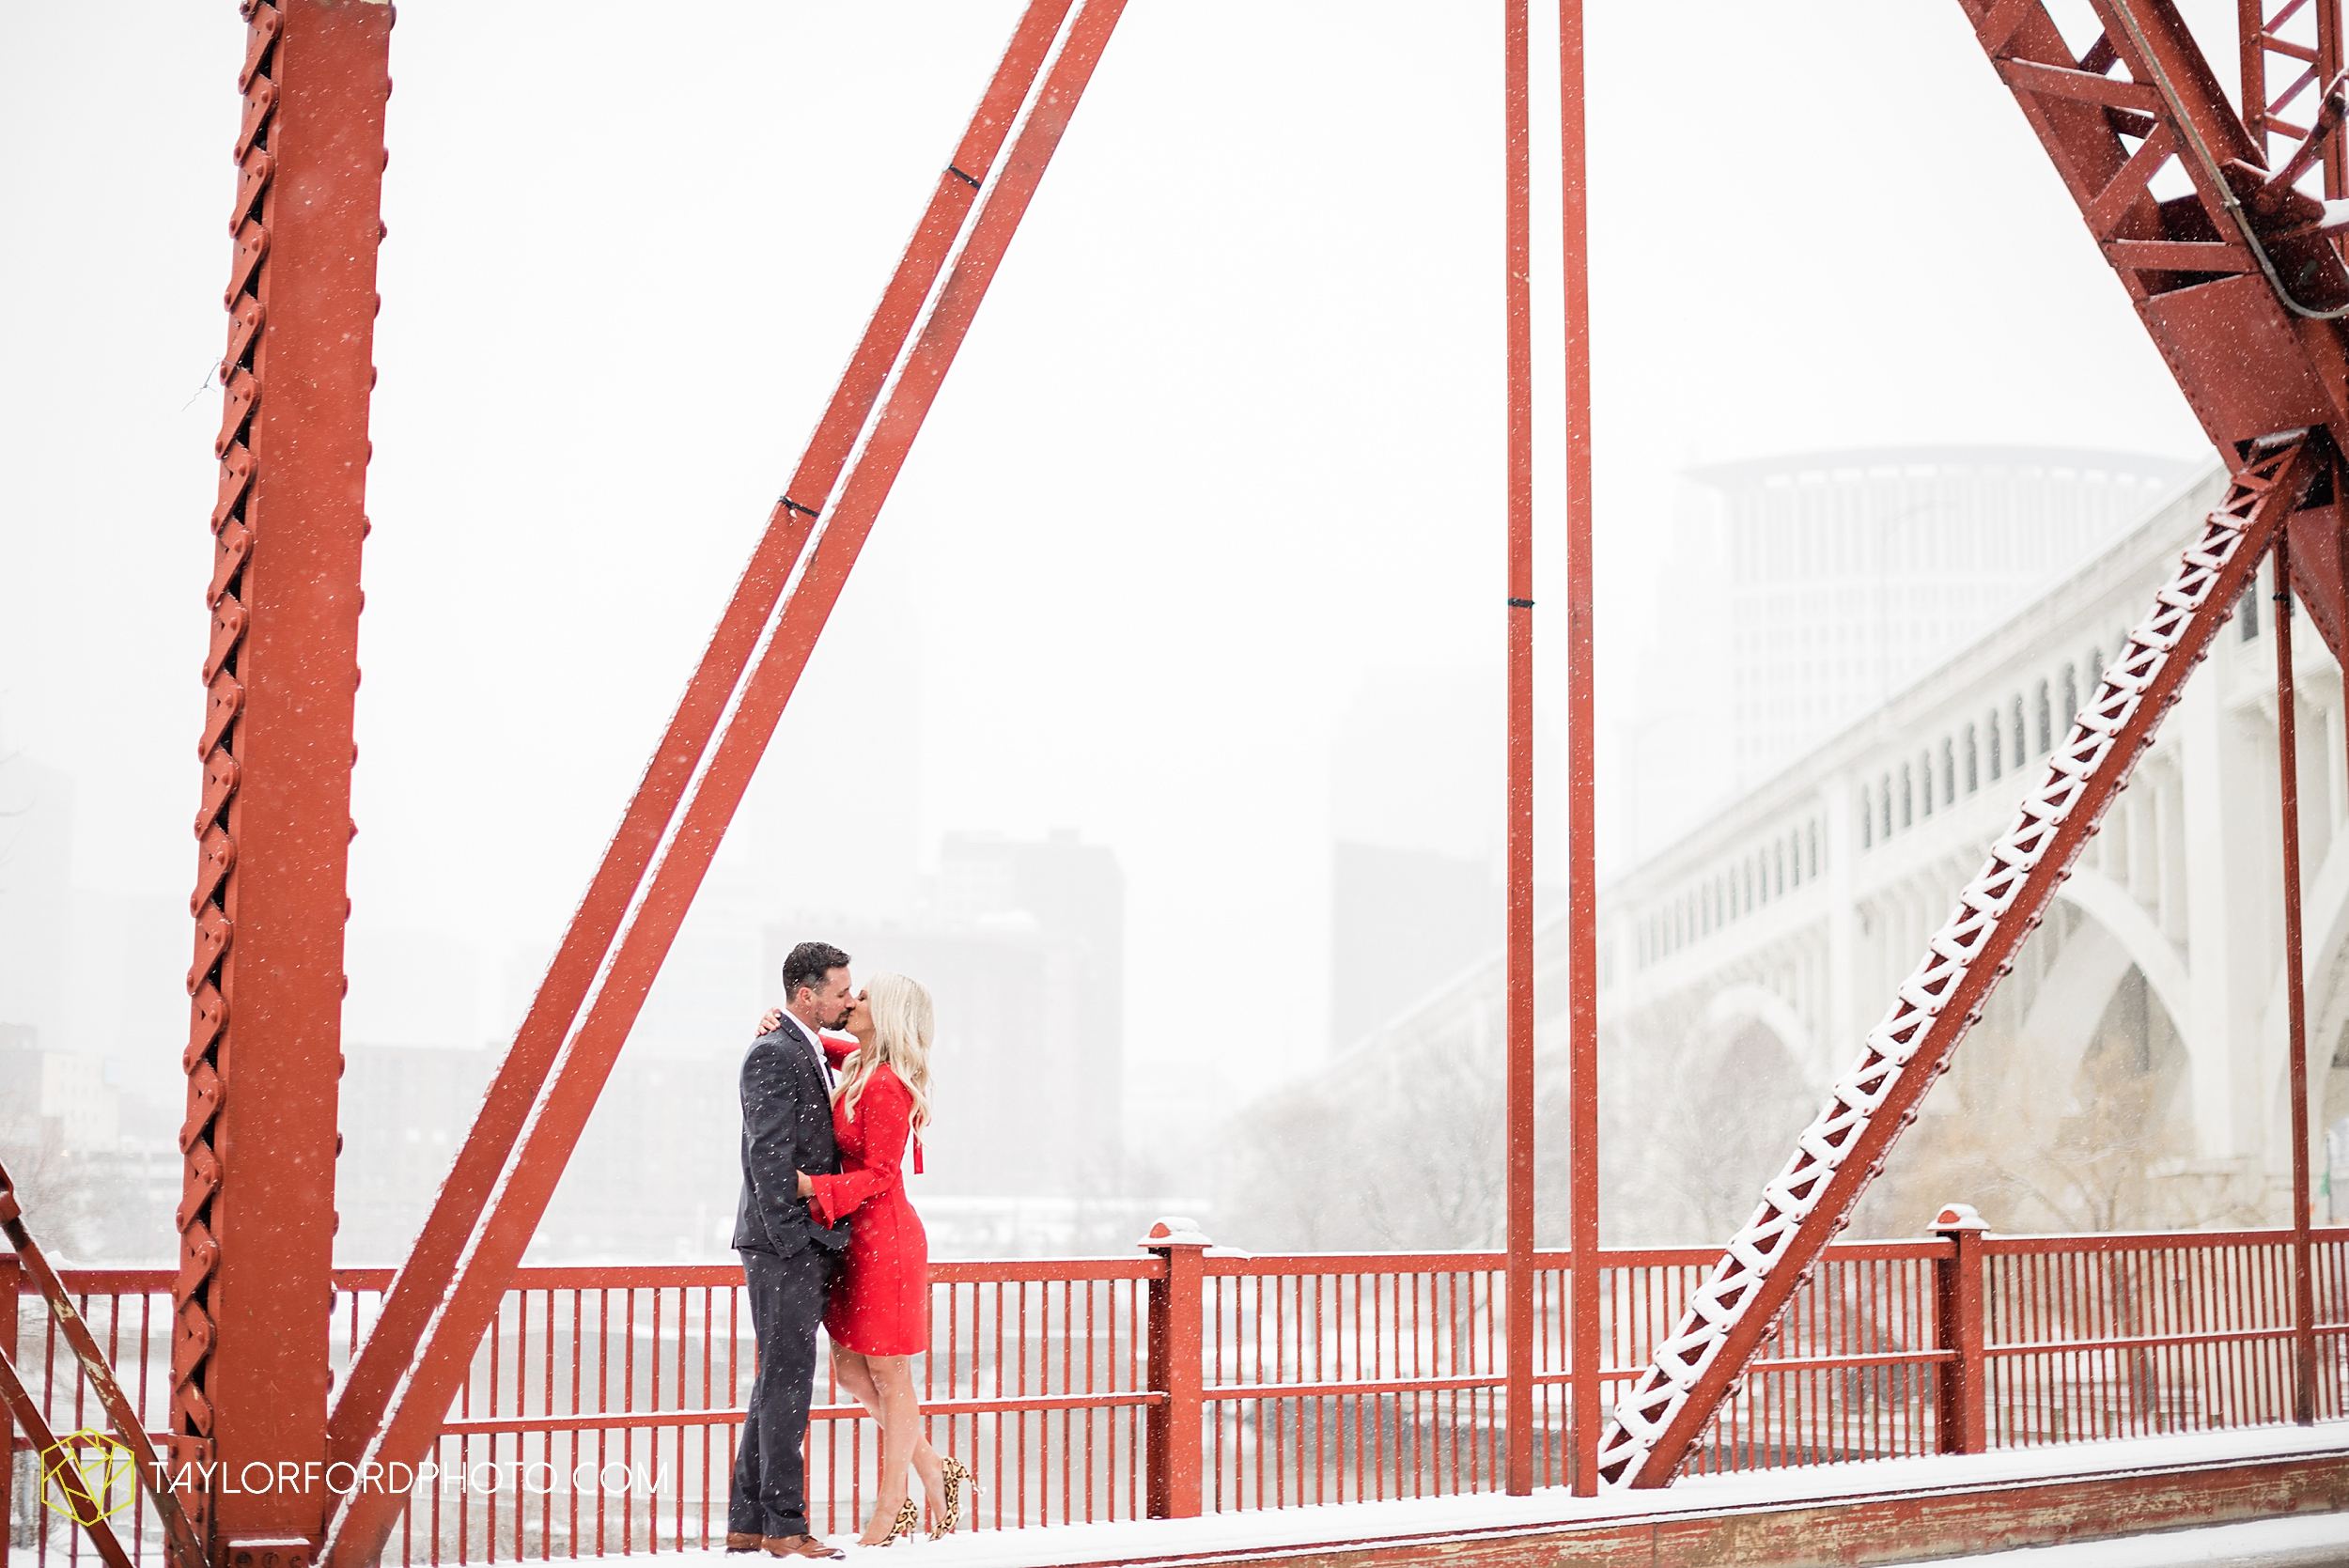 brittany-phil-downtown-cleveland-viaduct-the-flats-east-bank-rocky-river-reservation-engagement-photography-taylor-ford-hirschy-photographer_2430.jpg